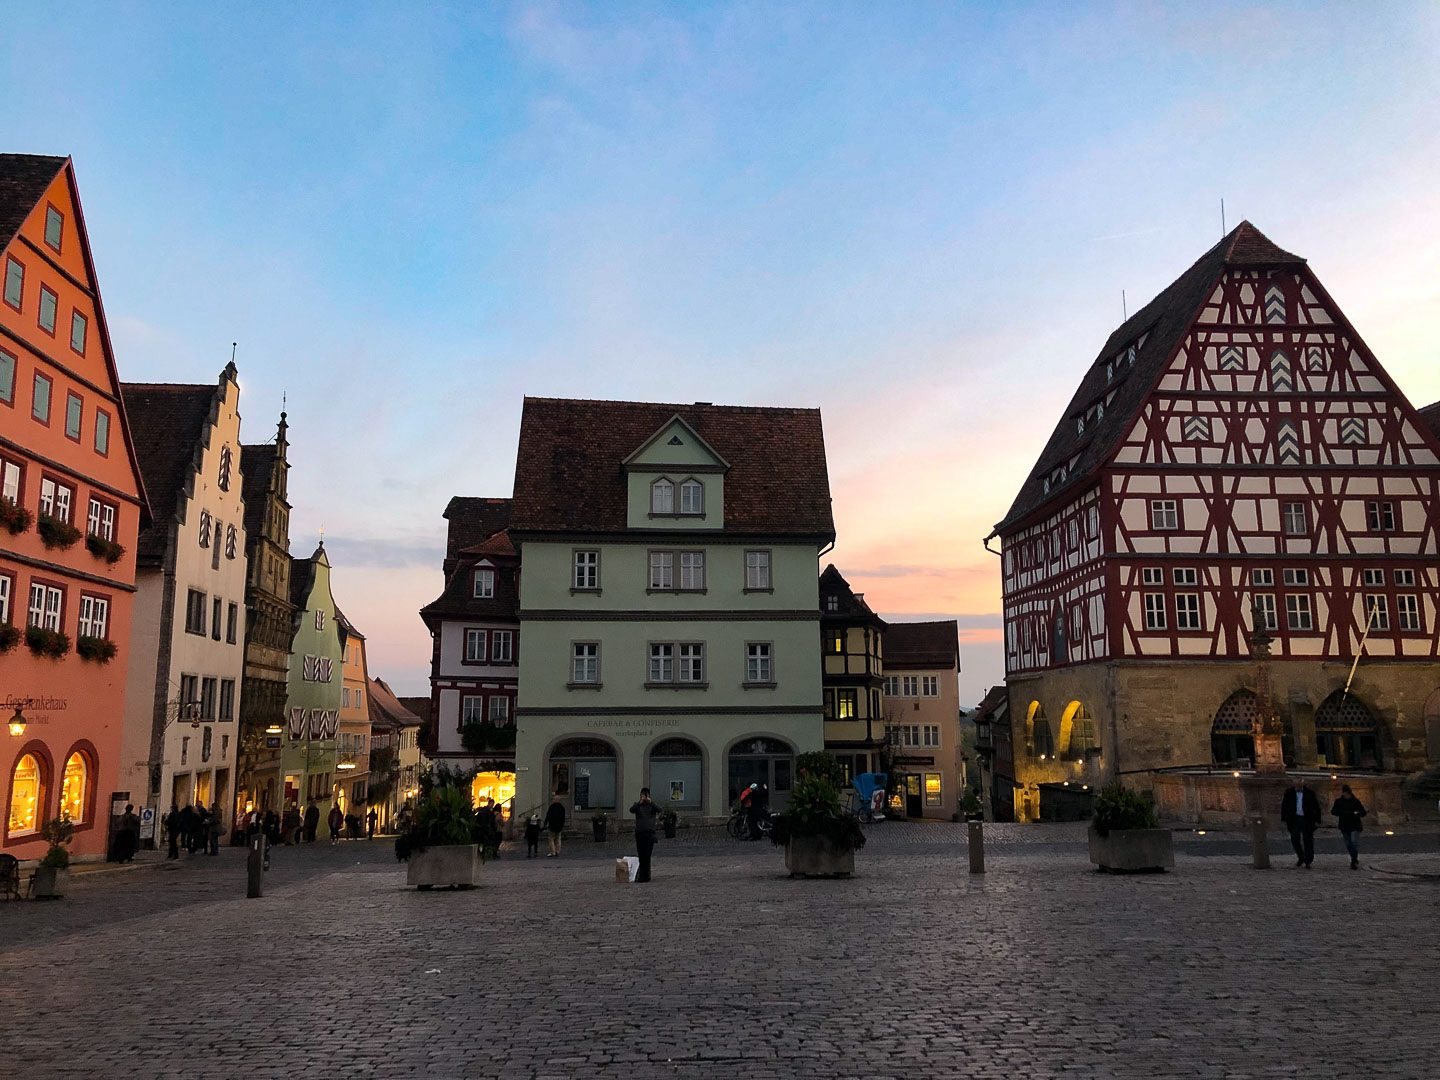 Rothenberg ob der tauber main square